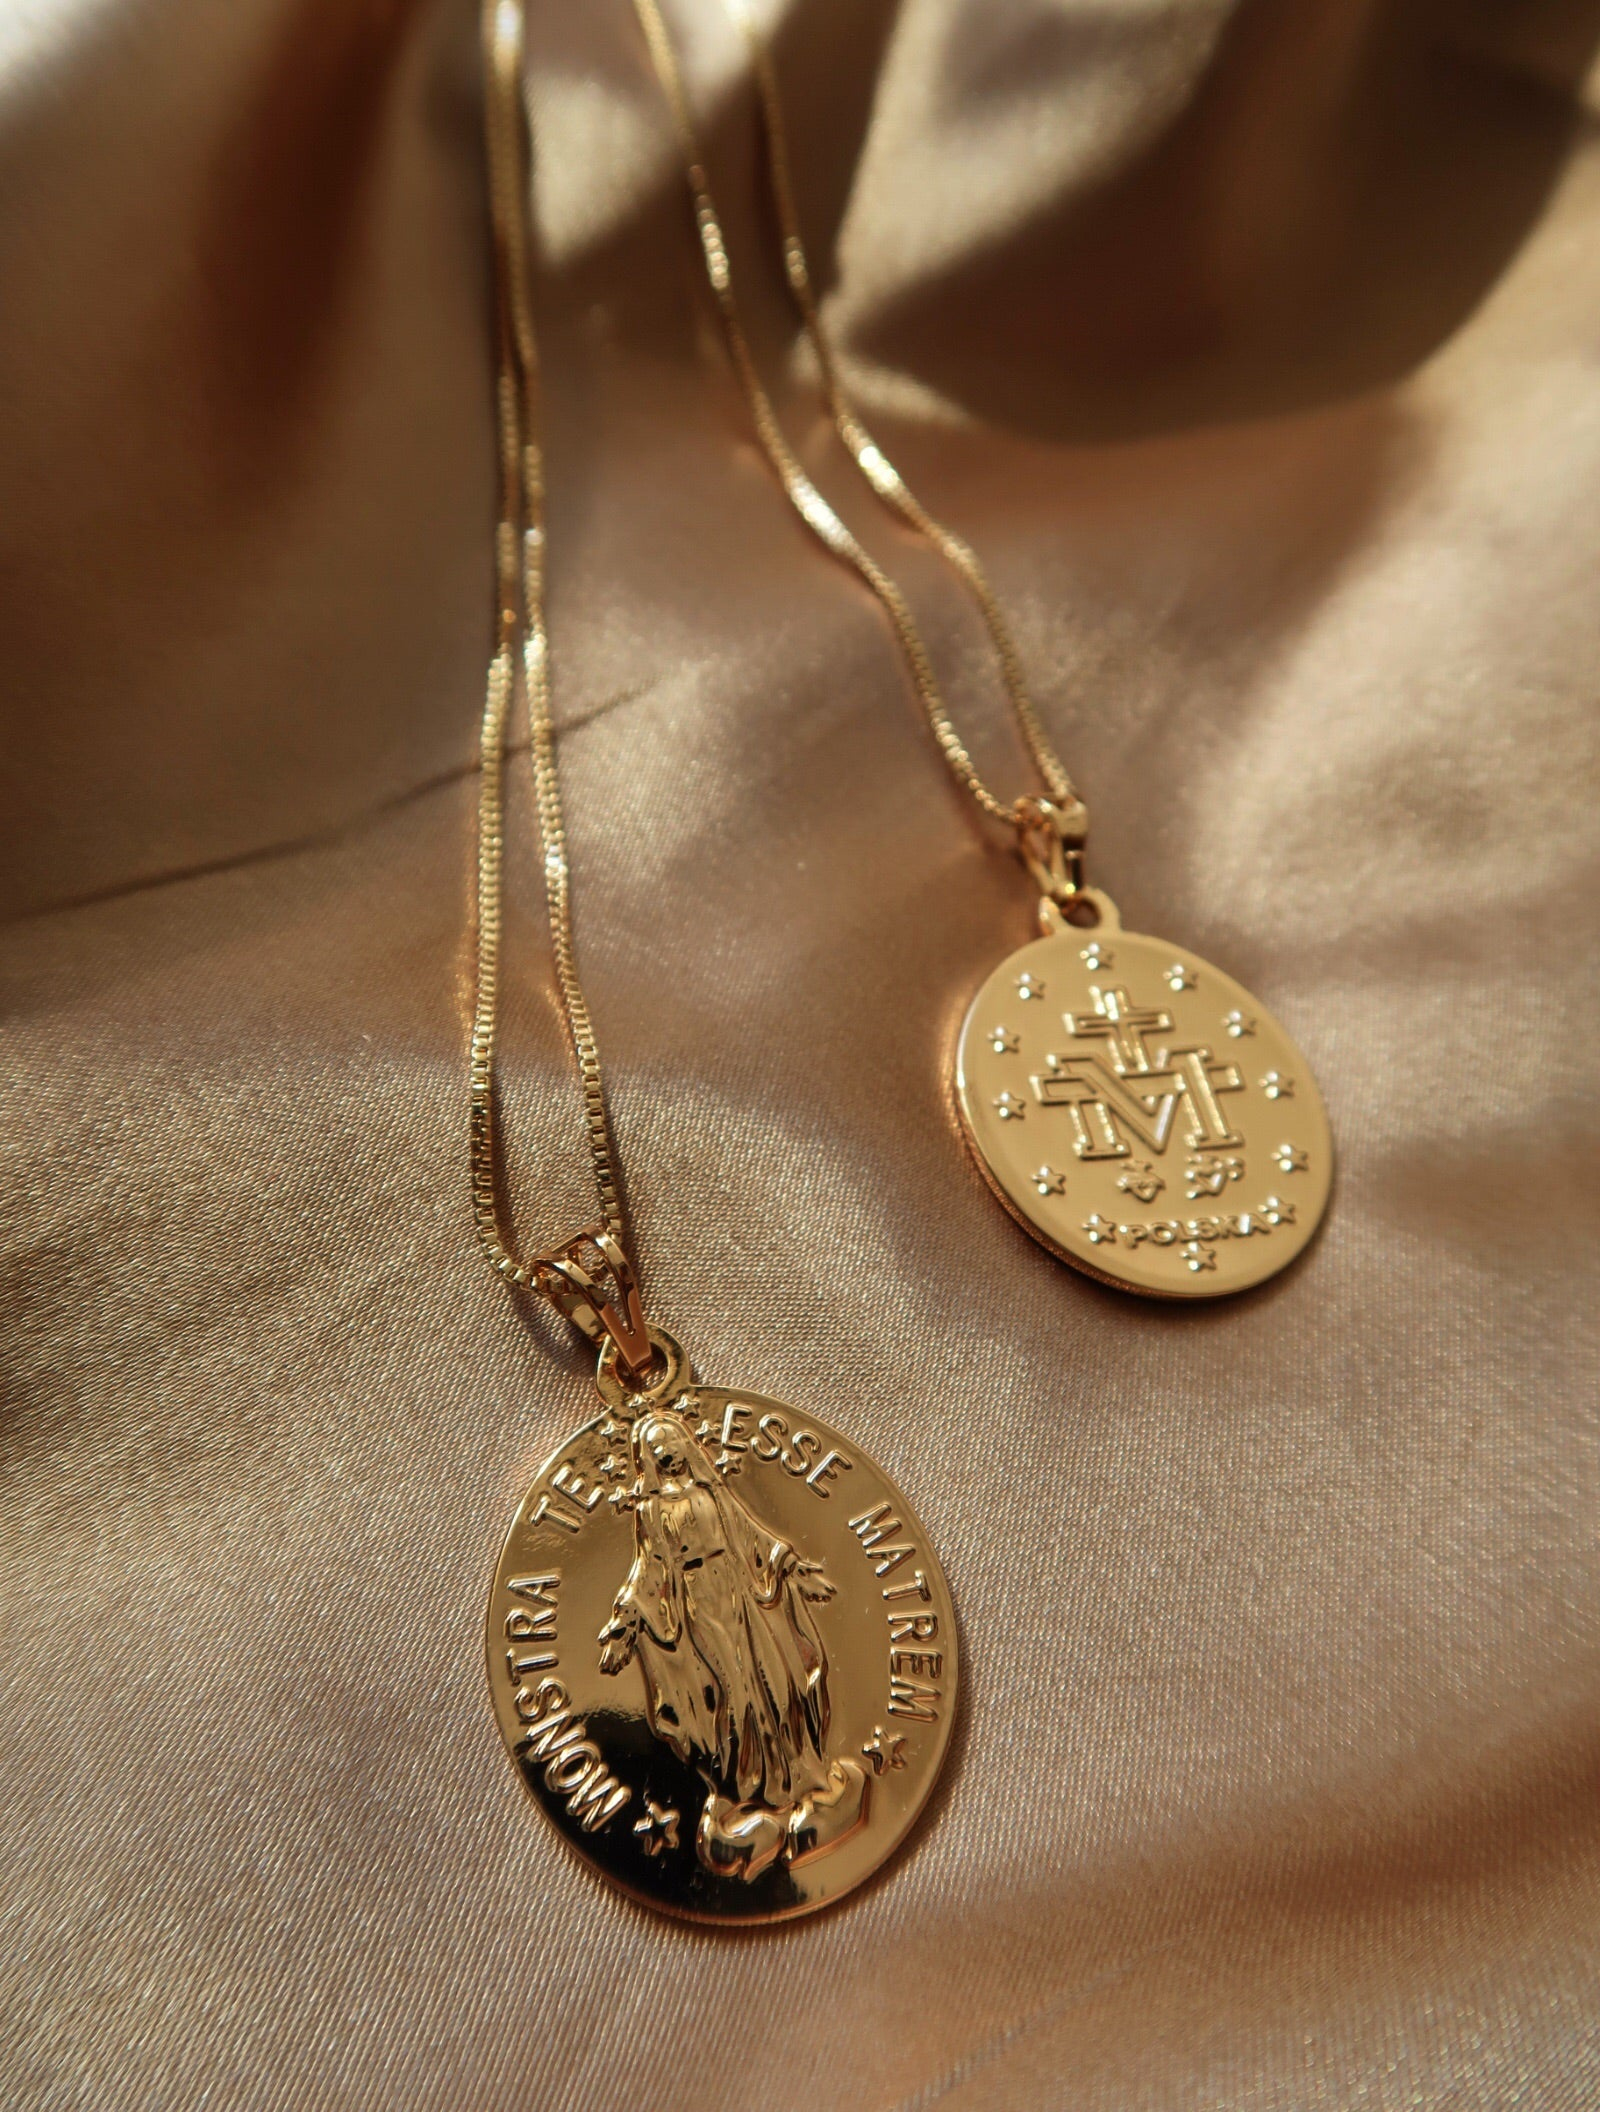 TERESSE MEDALLION PENDANT NECKLACE